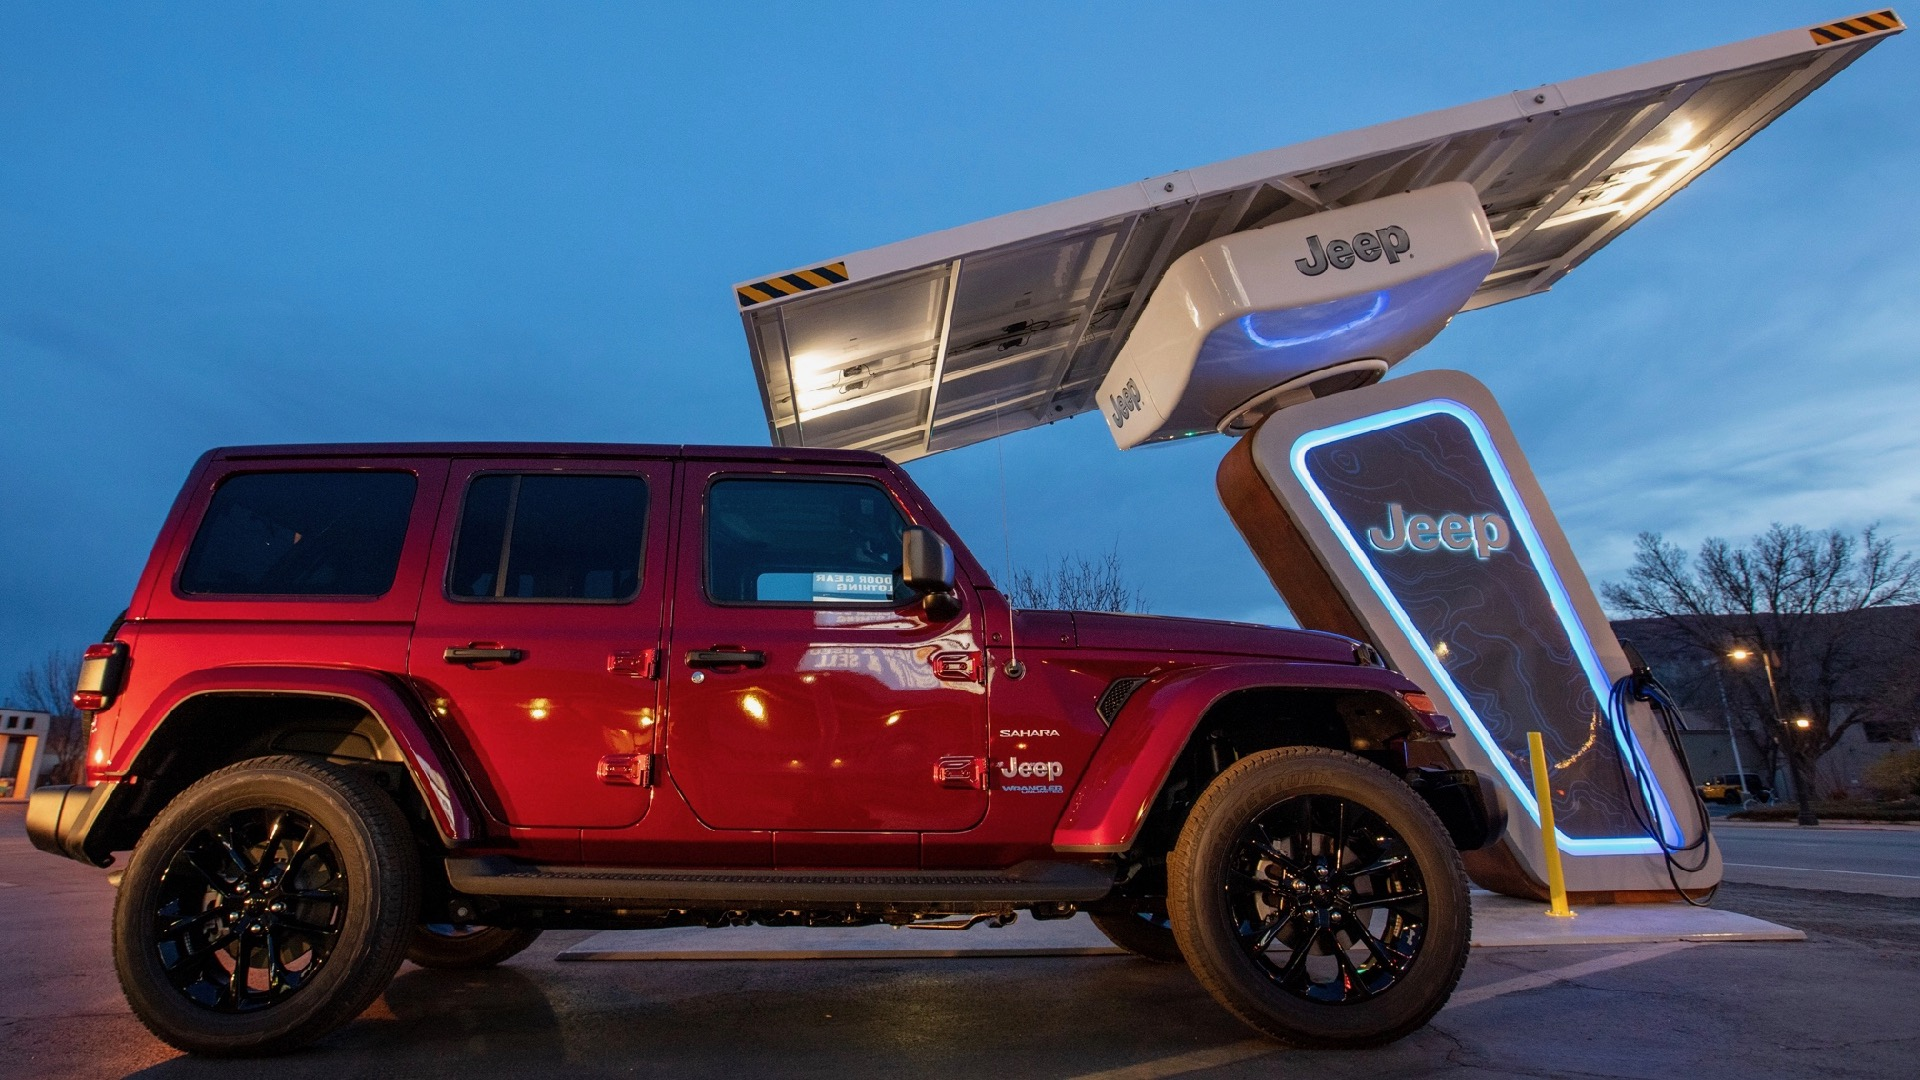 Electrify America is helping Jeep set up a charging network at off-road trailheads